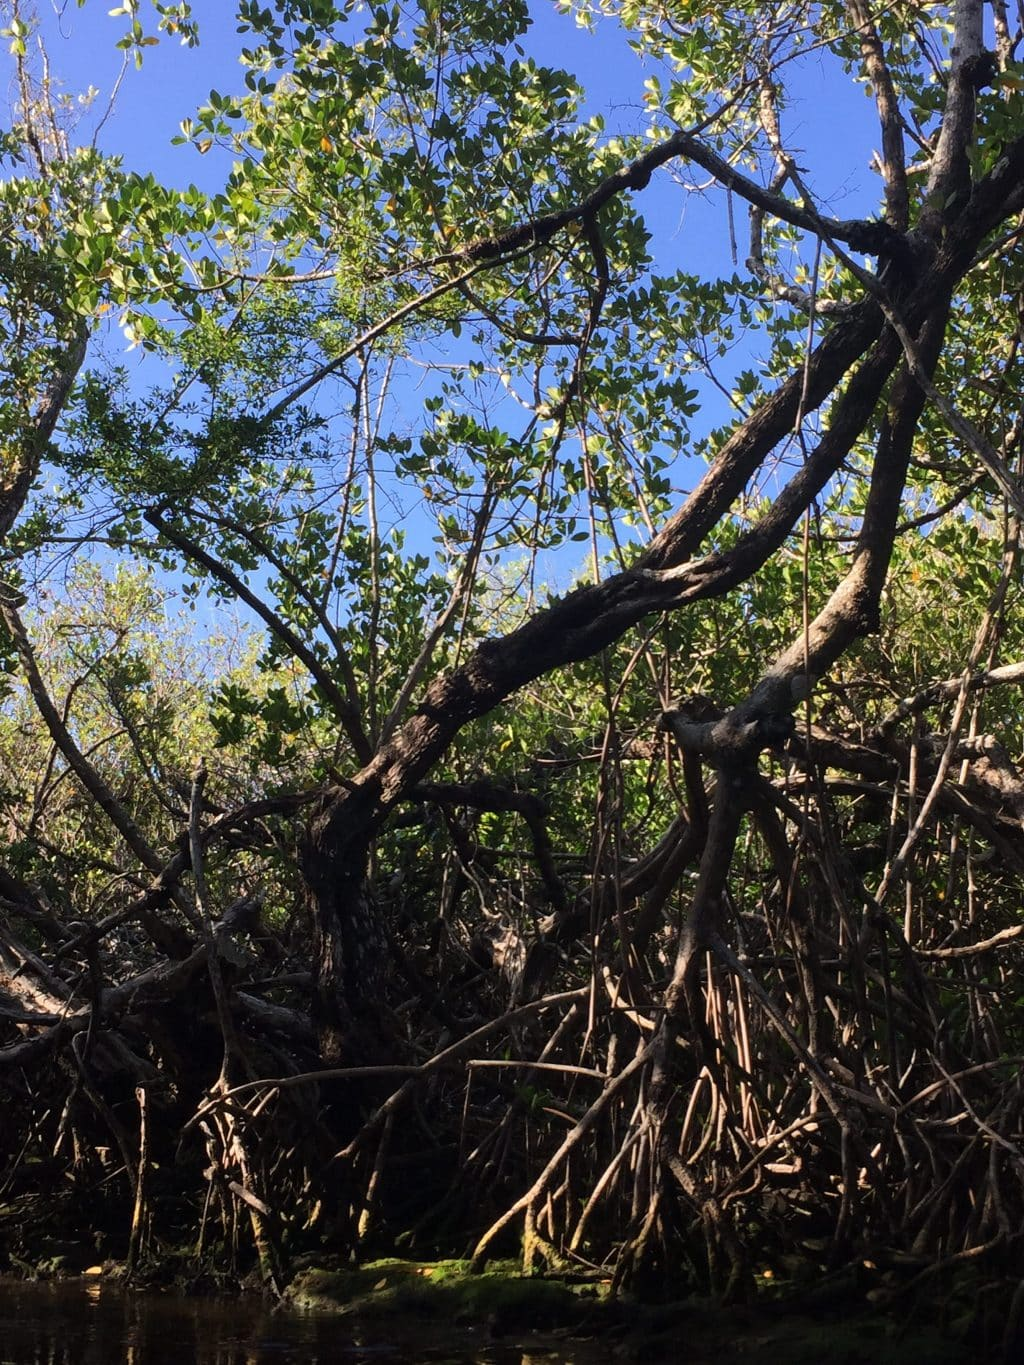 Florida Everglades blue sky and mangroves